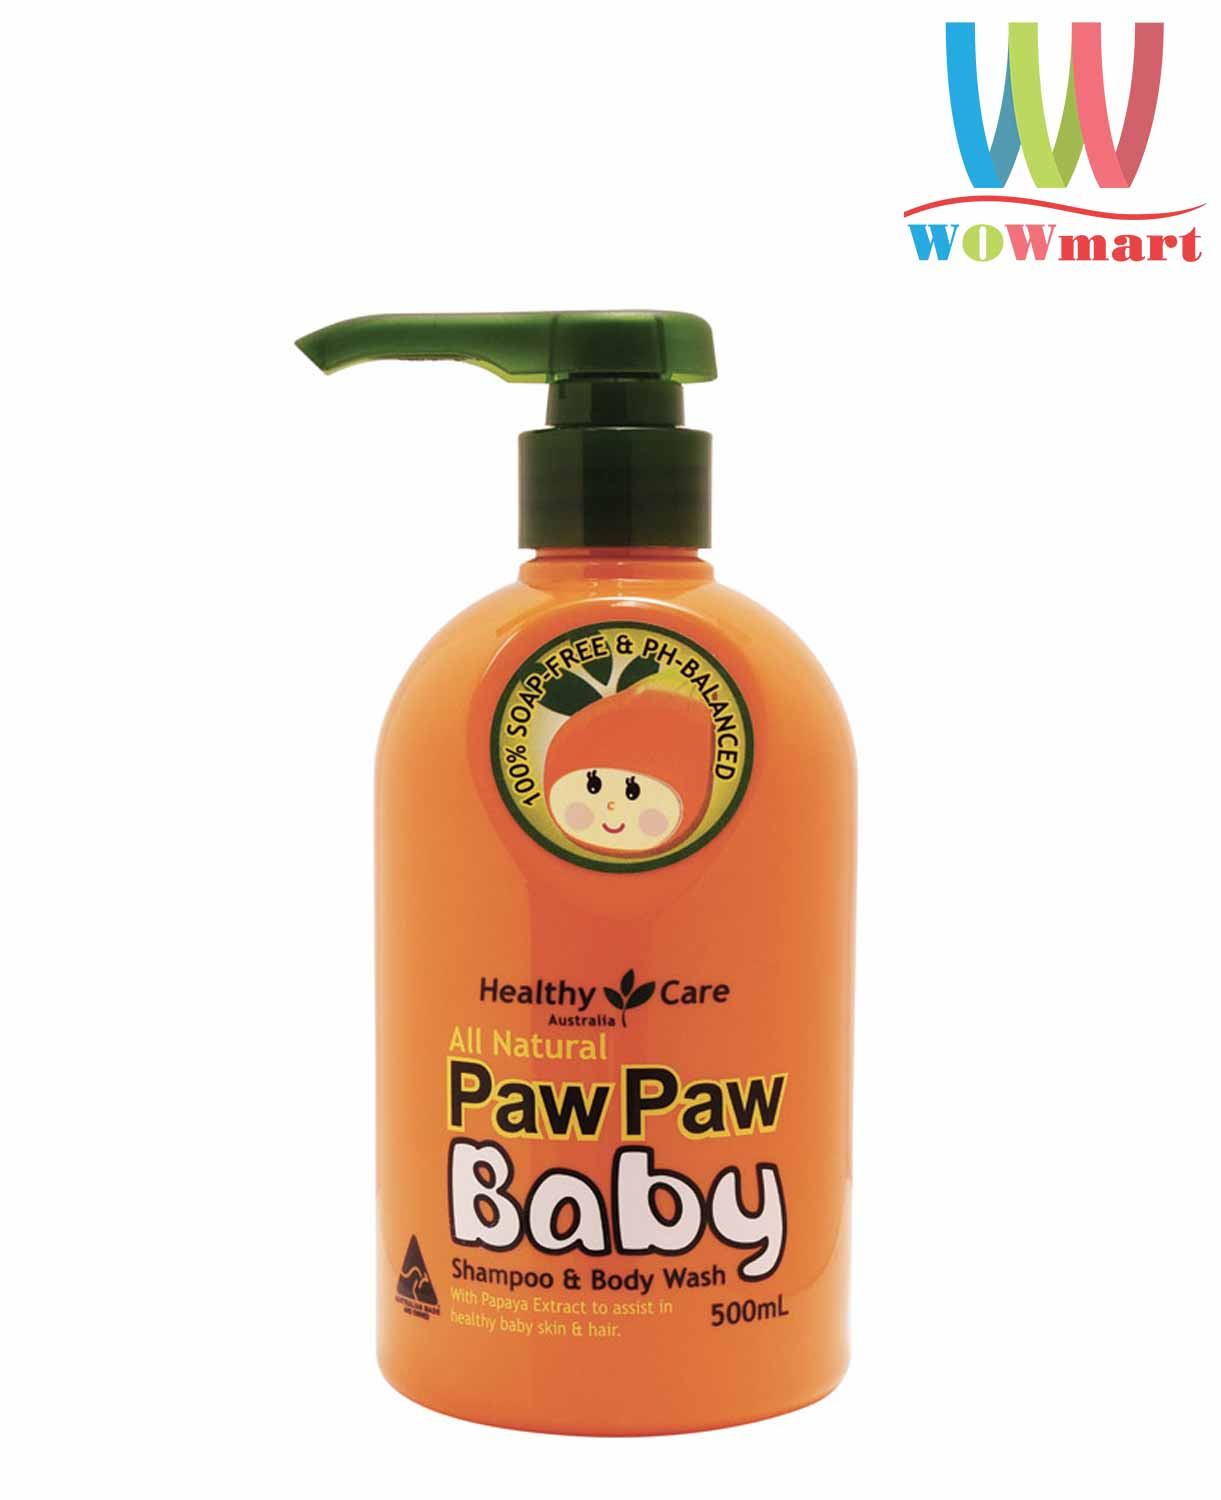 goi-tam-2-trong-1-cho-tre-em-healthy-care-paw-paw-baby-shampoo-body-wash-500ml